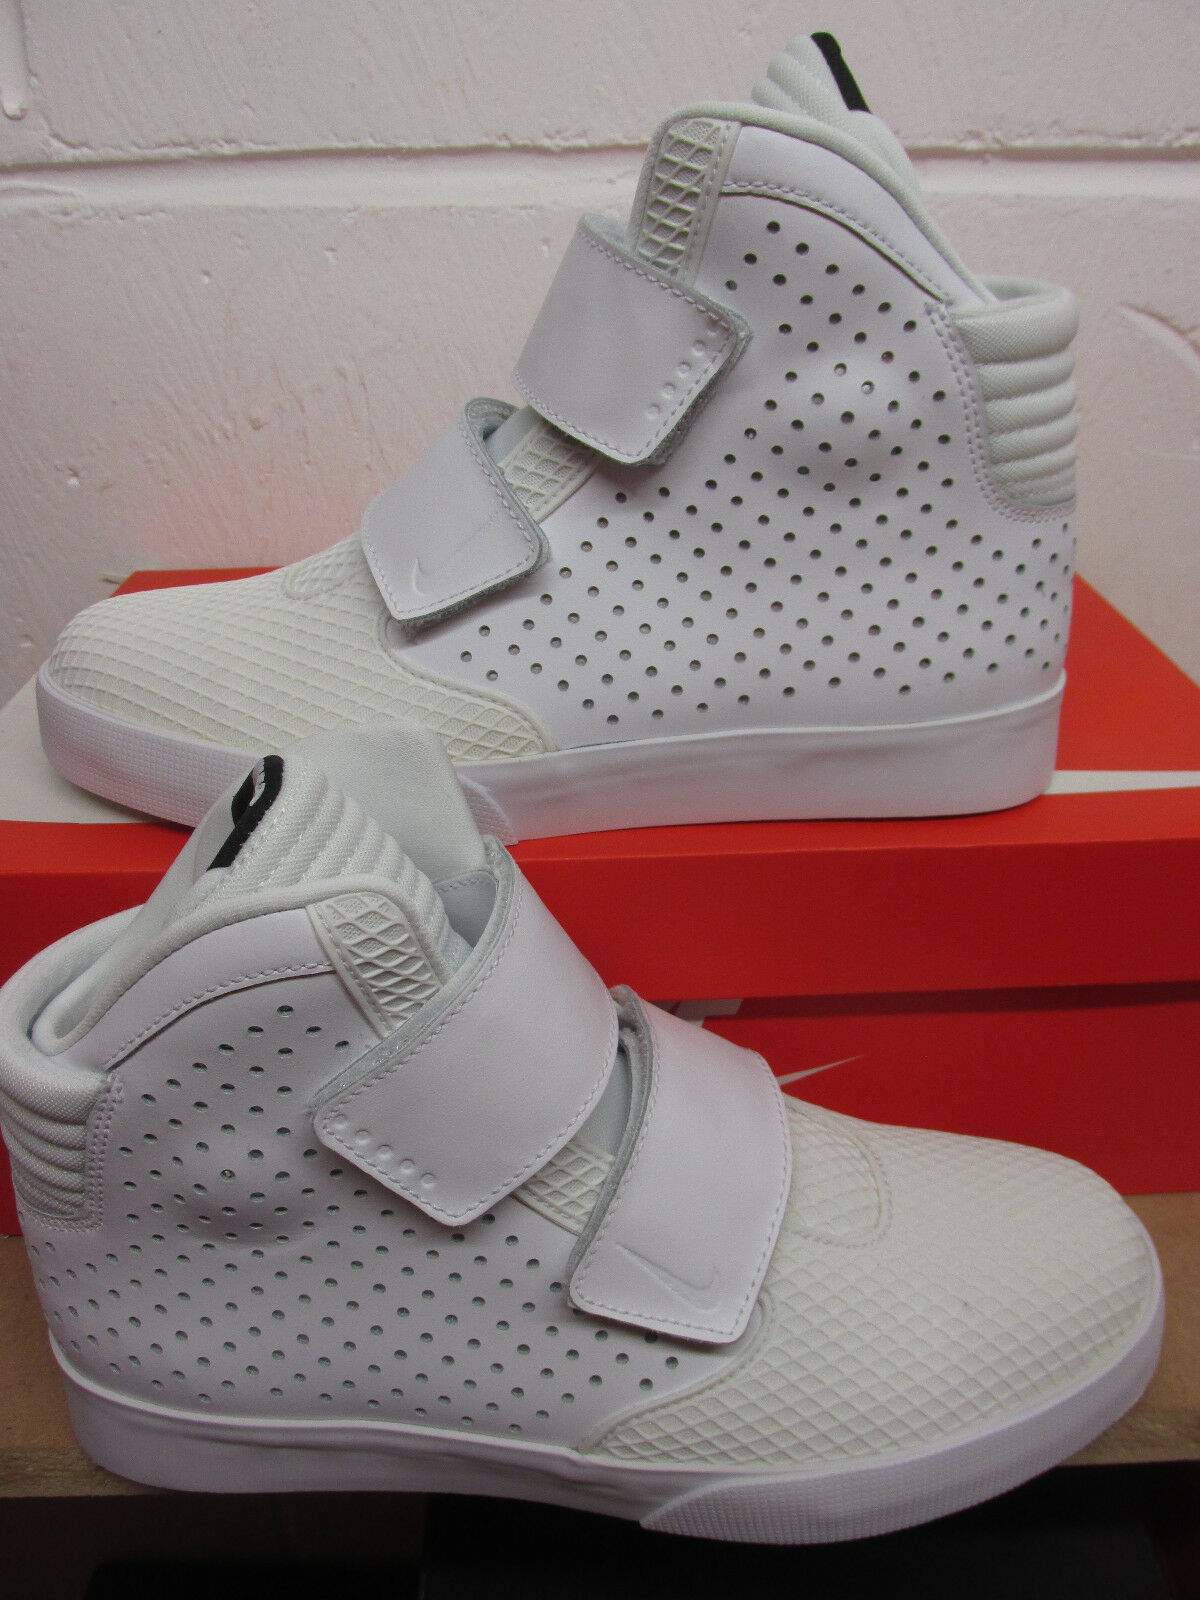 nike flystepper 2K3 PRM homme hi top trainers 677473 101 sneakers chaussures